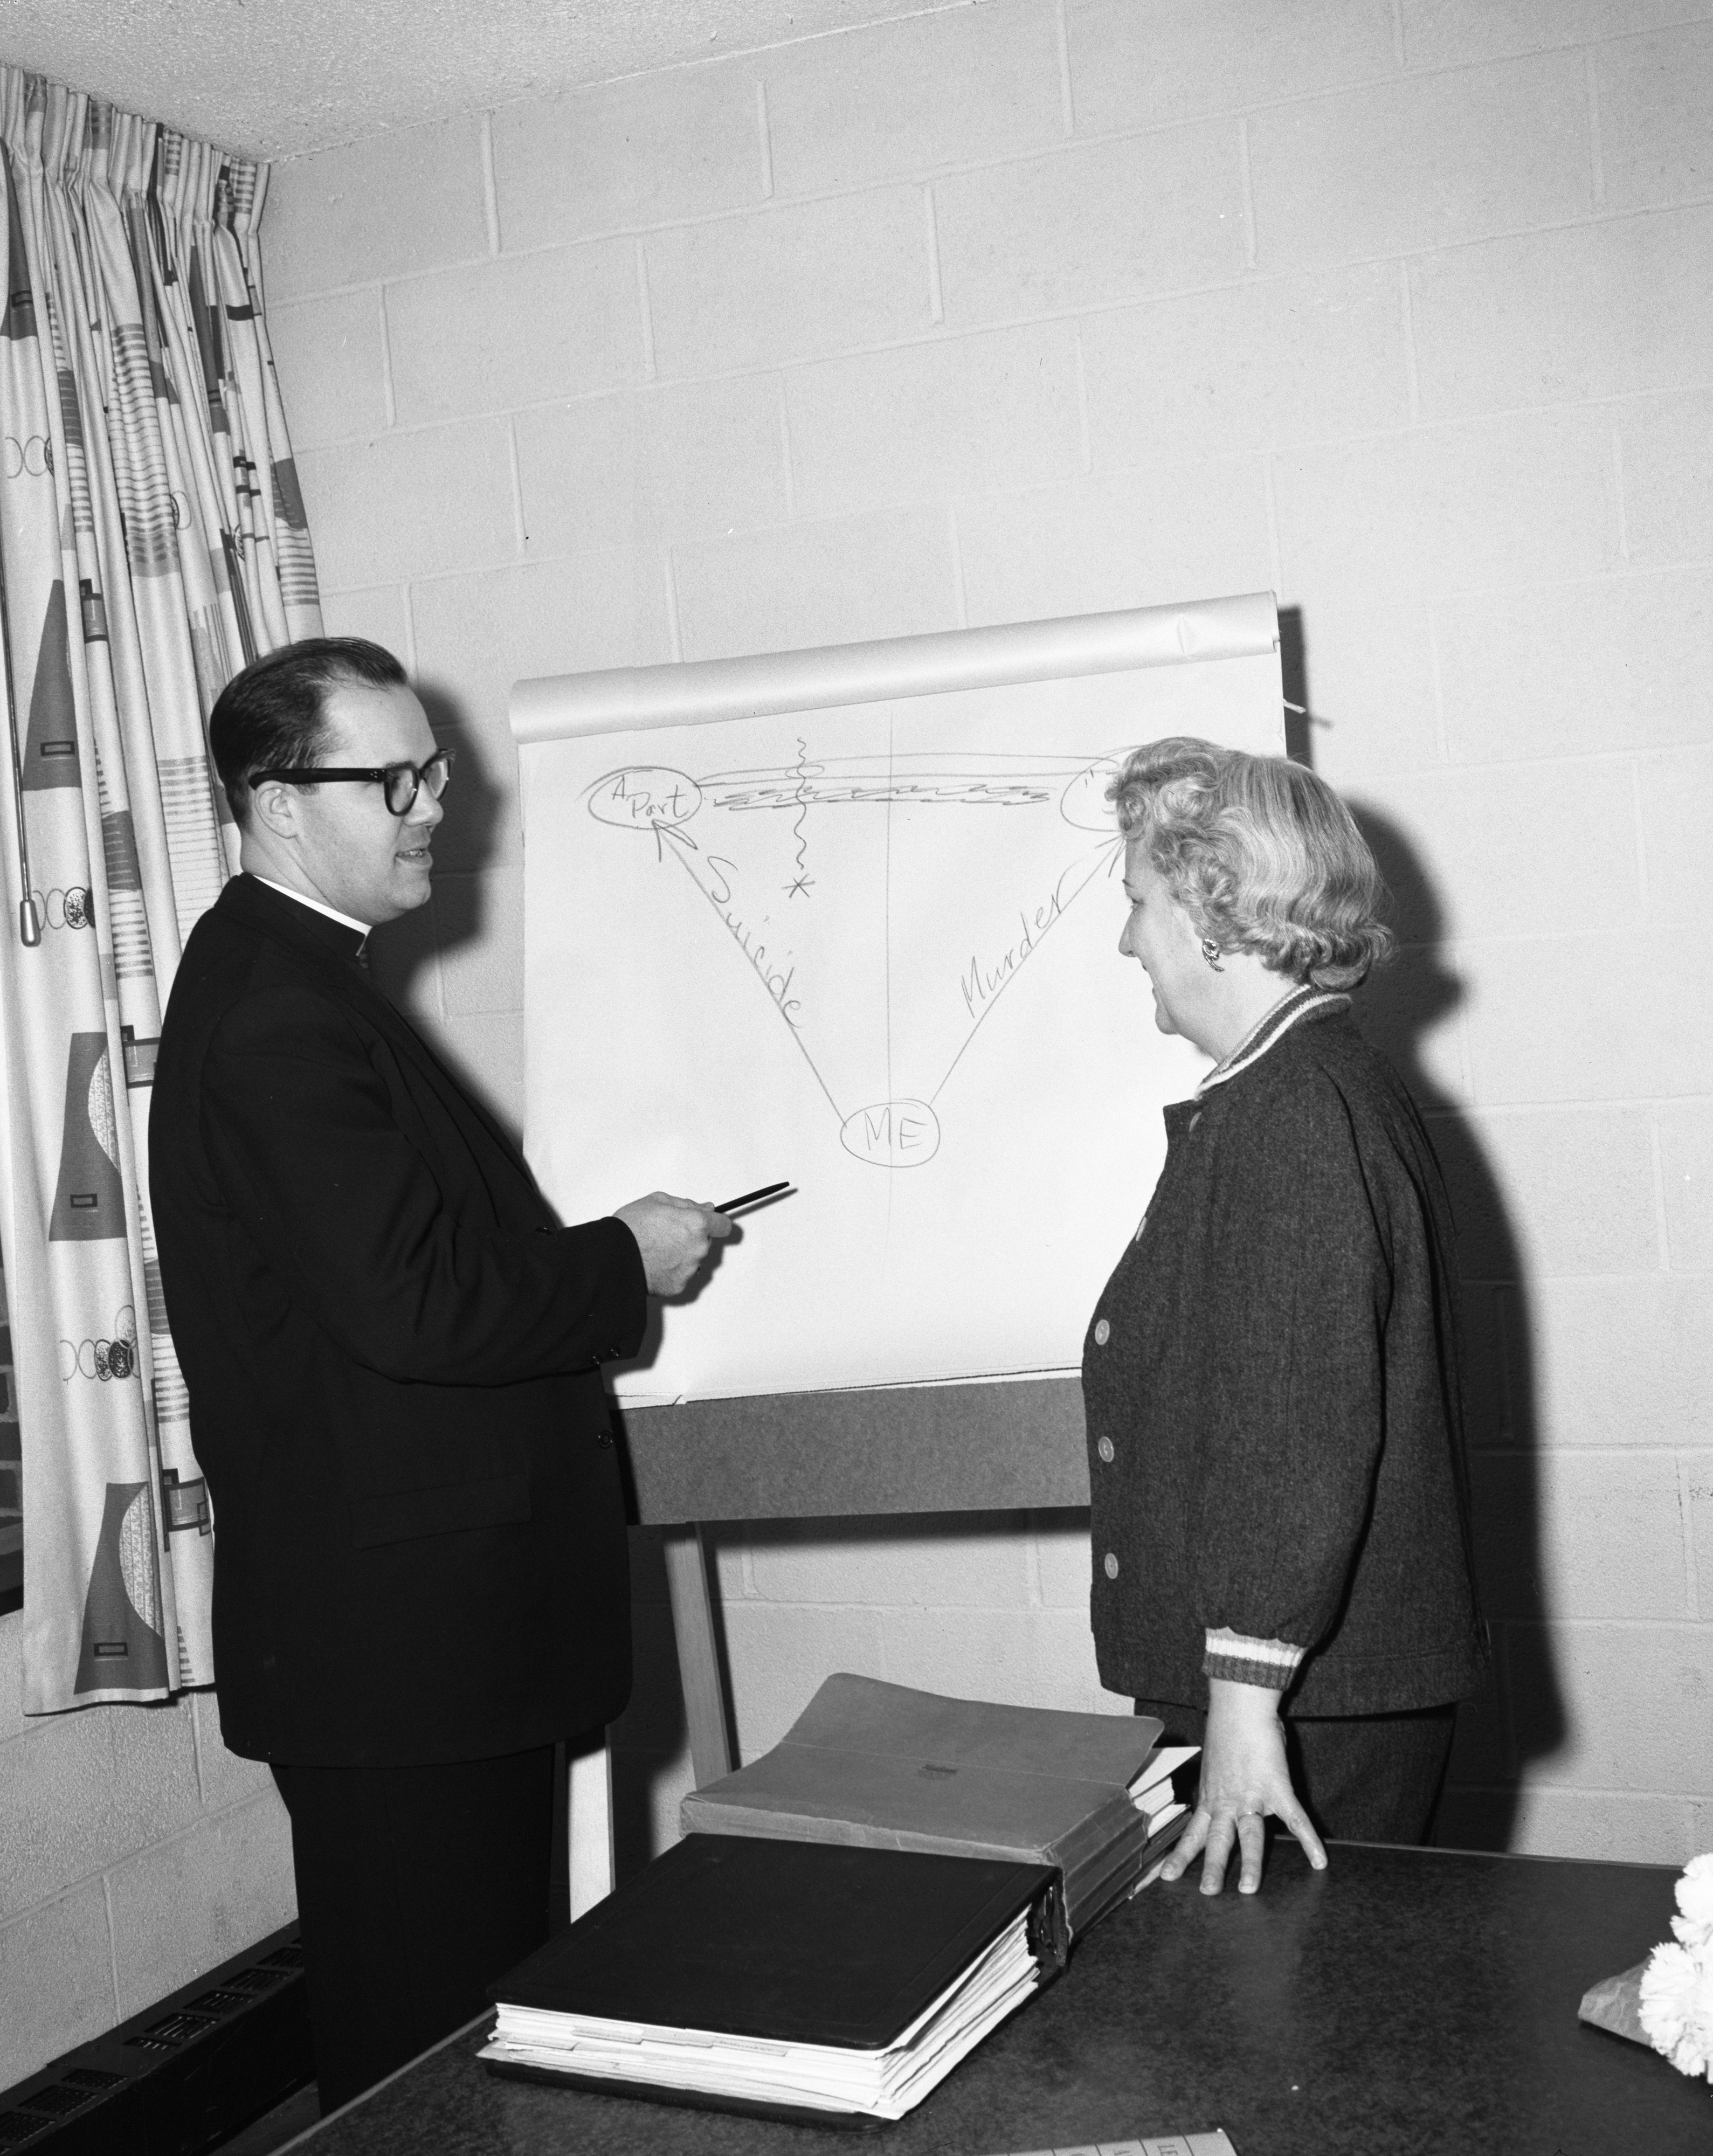 Rev. Donald Bodley & Mrs. Thomas Lyndon Look at Chart, March 1960 image